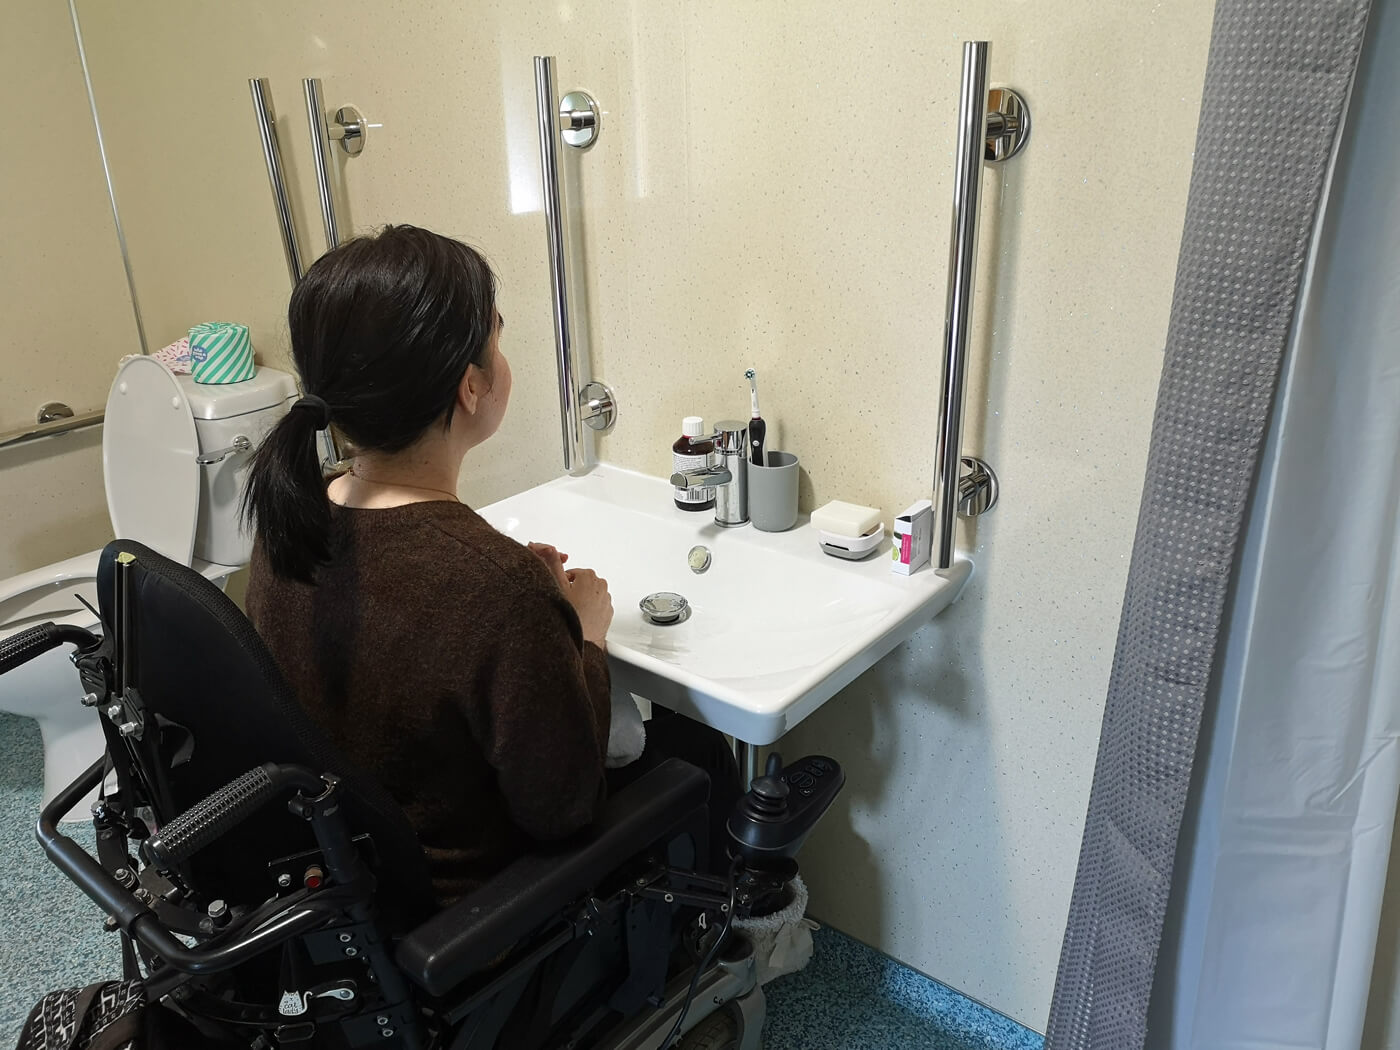 Emma sitting in her wheelchair at the roll-under bathroom sink.